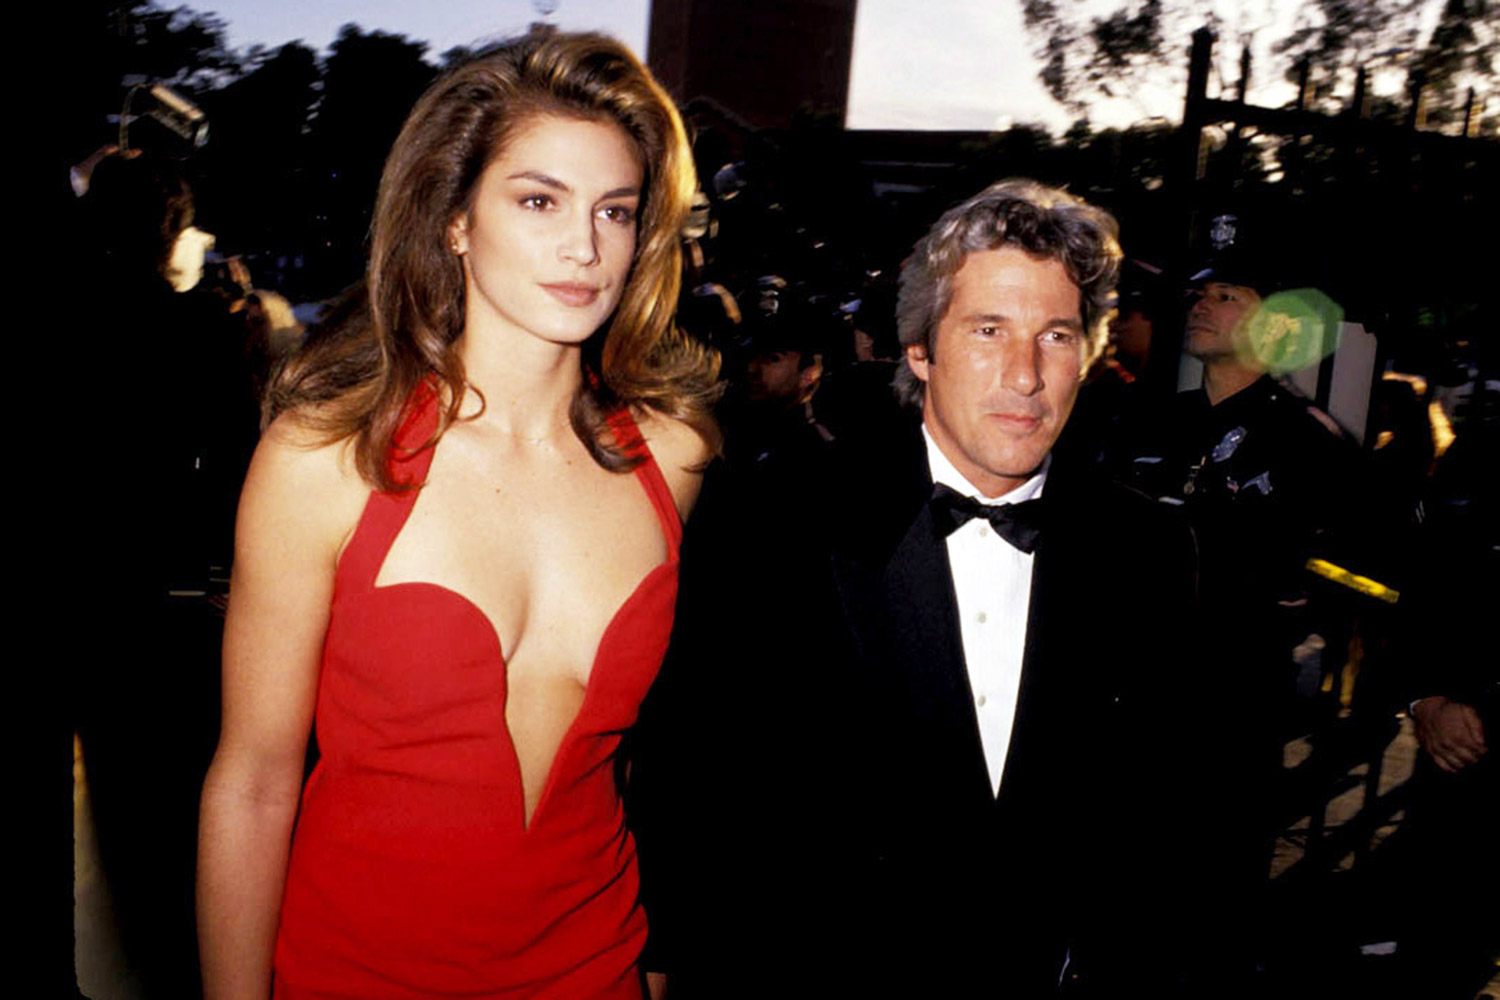 63rd Annual Academy Awards, Cindy Crawford, Richard Gere